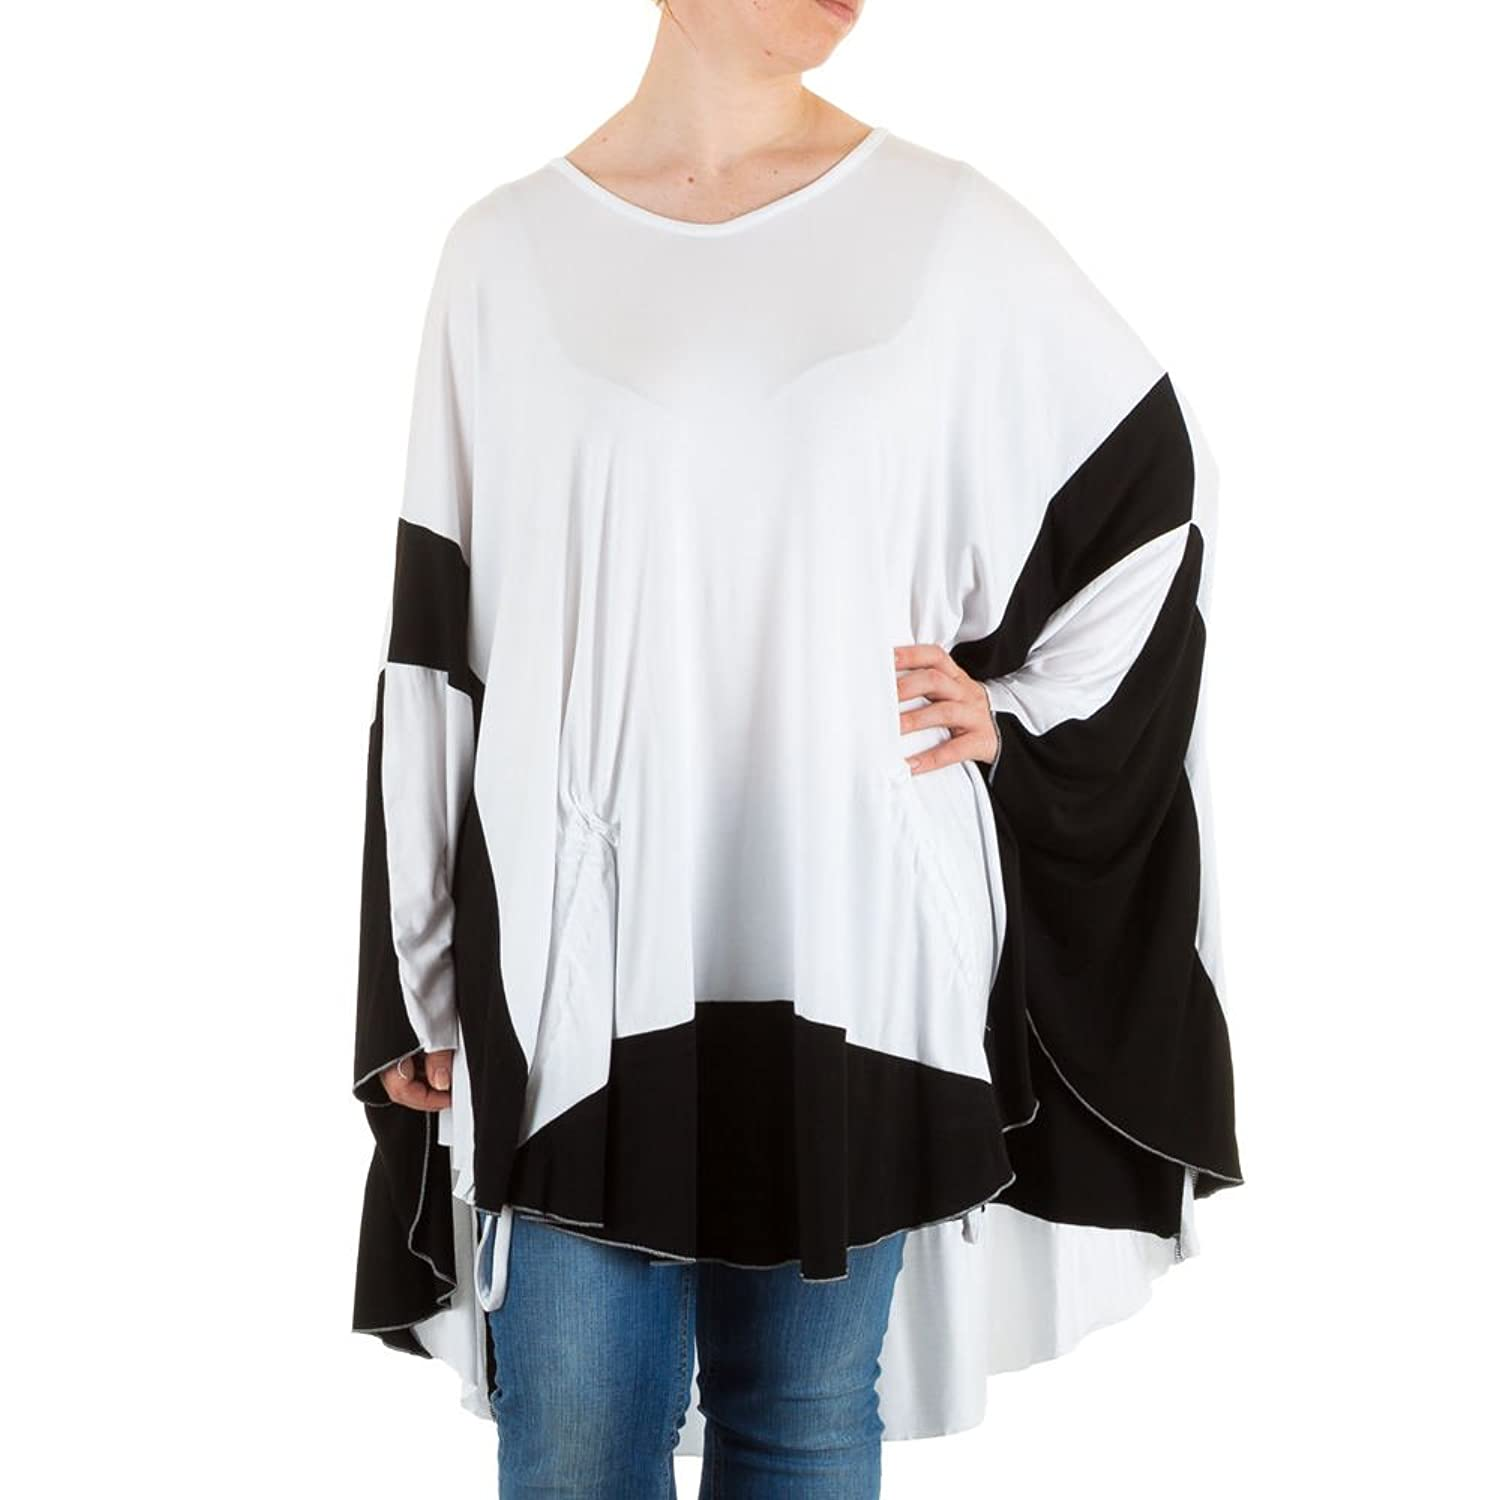 Ital-Design Women's Blouse One size